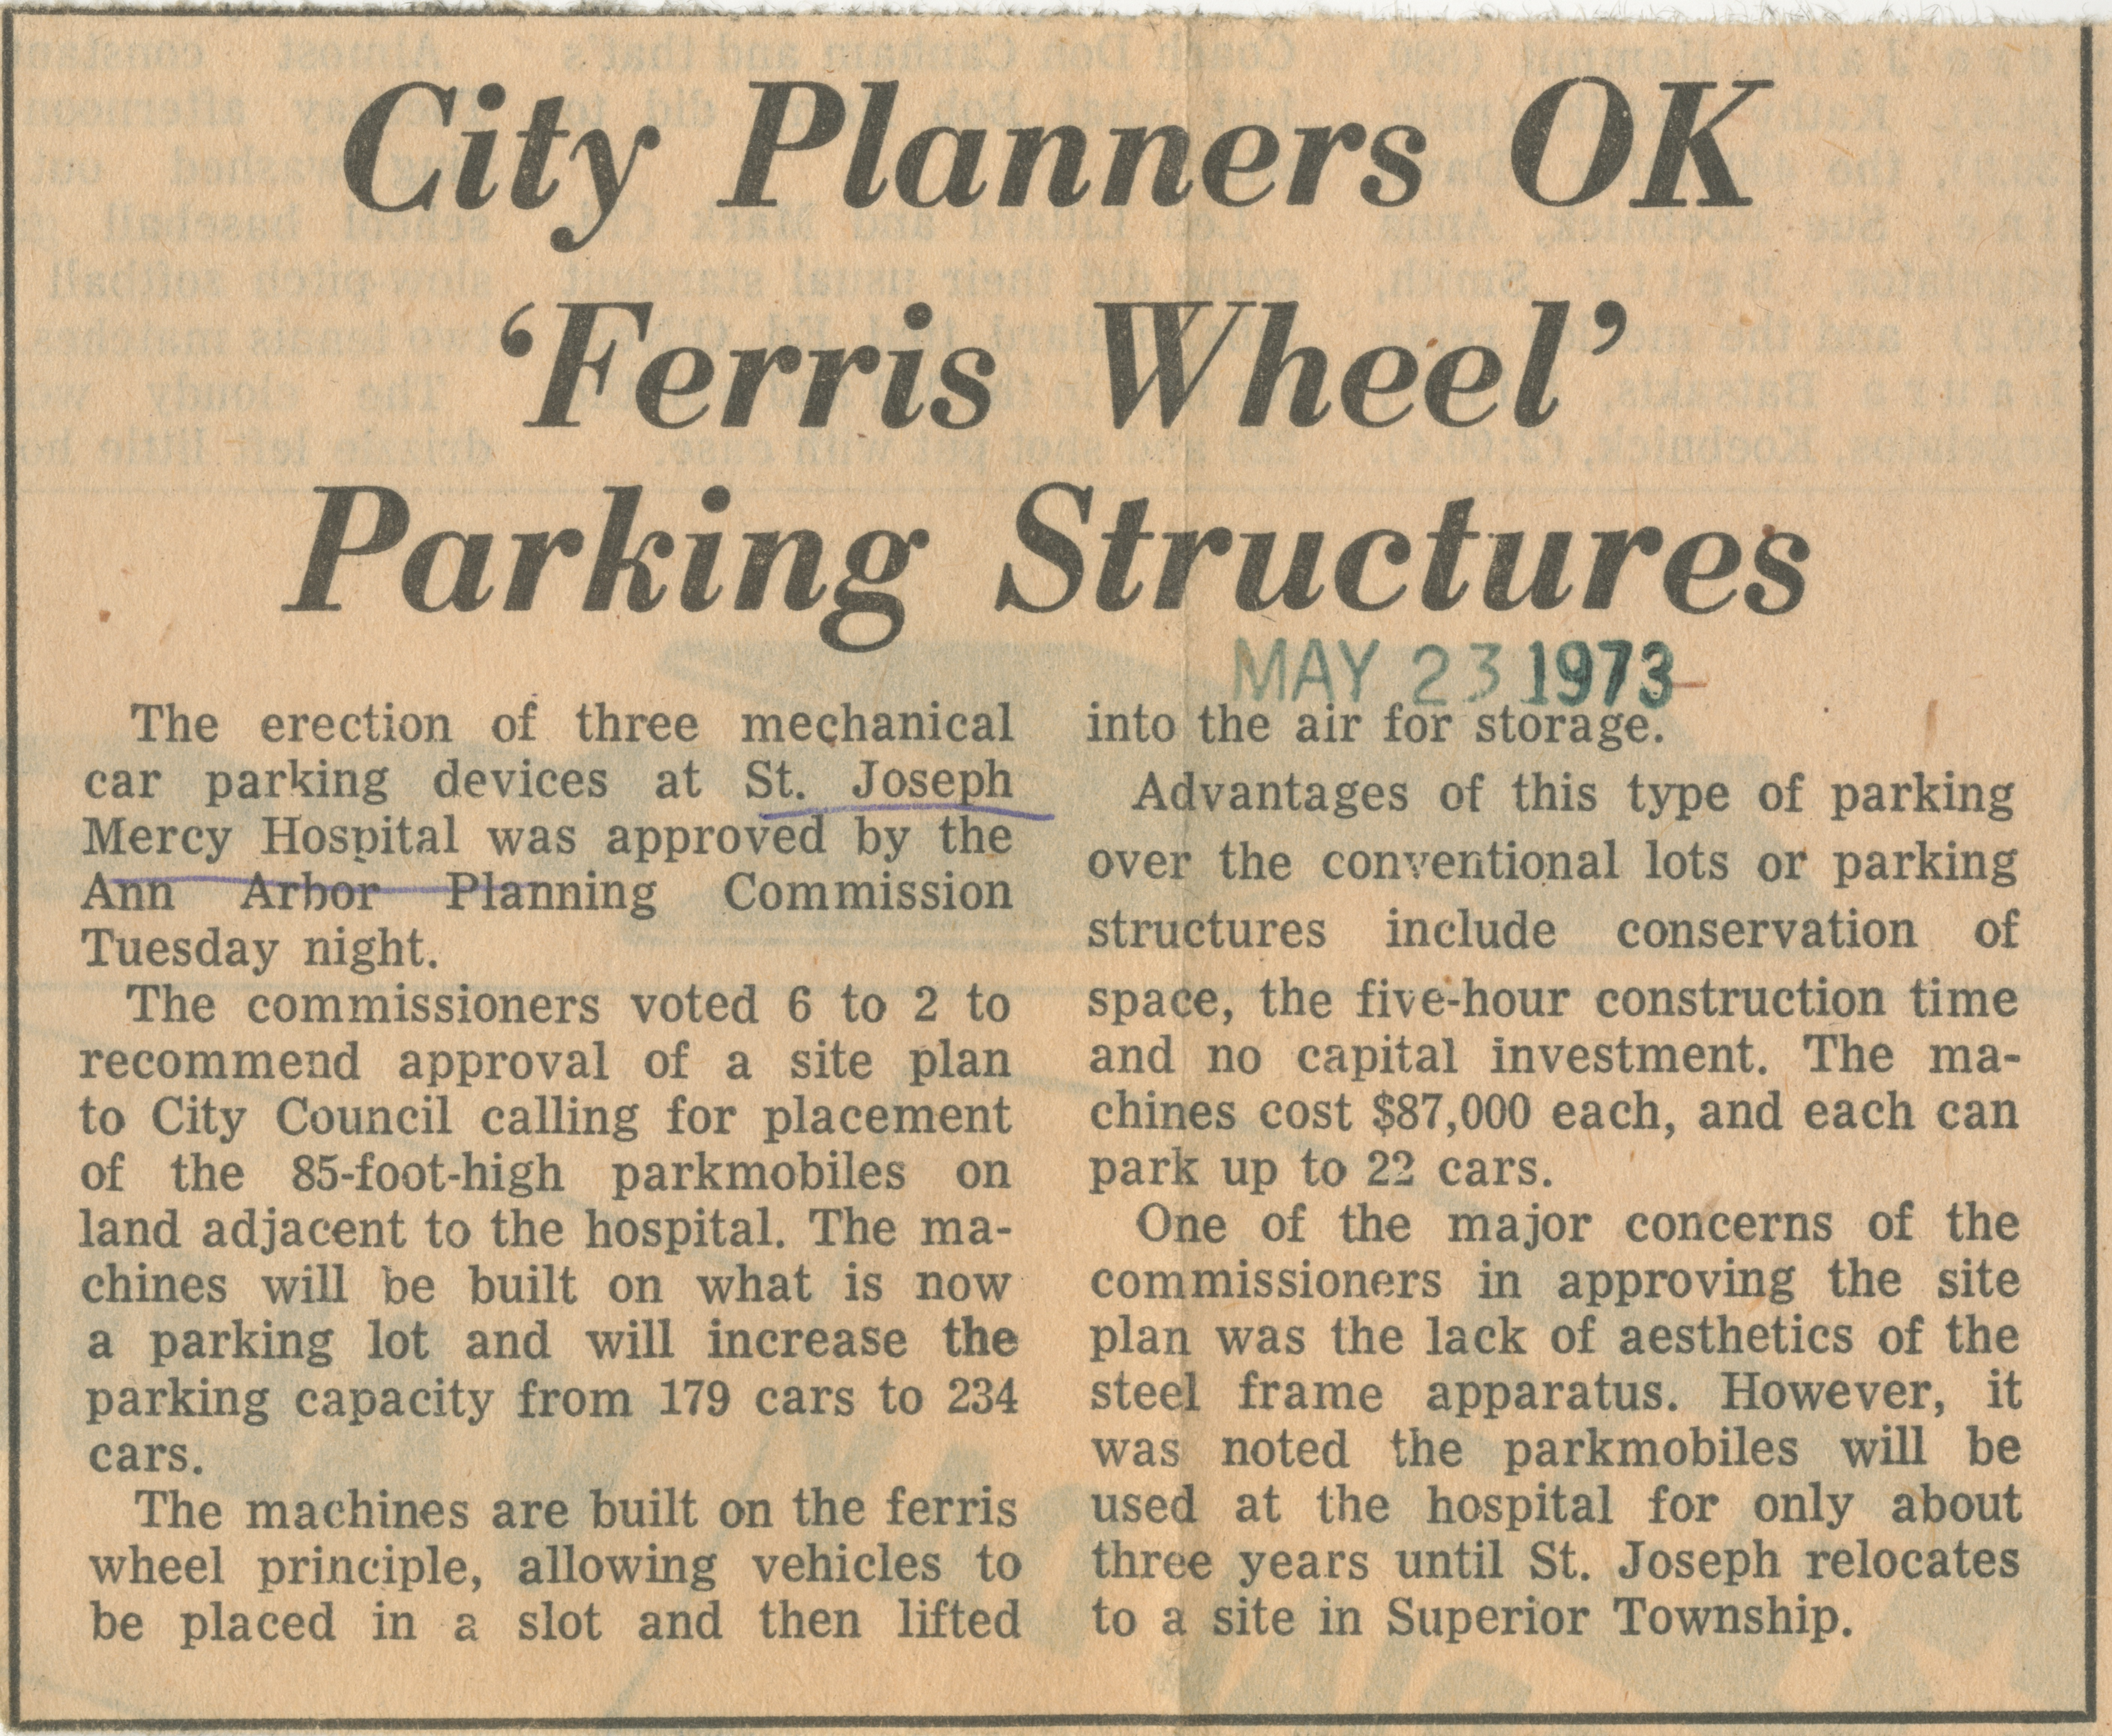 City Planners OK 'Ferris Wheel' Parking Structures image